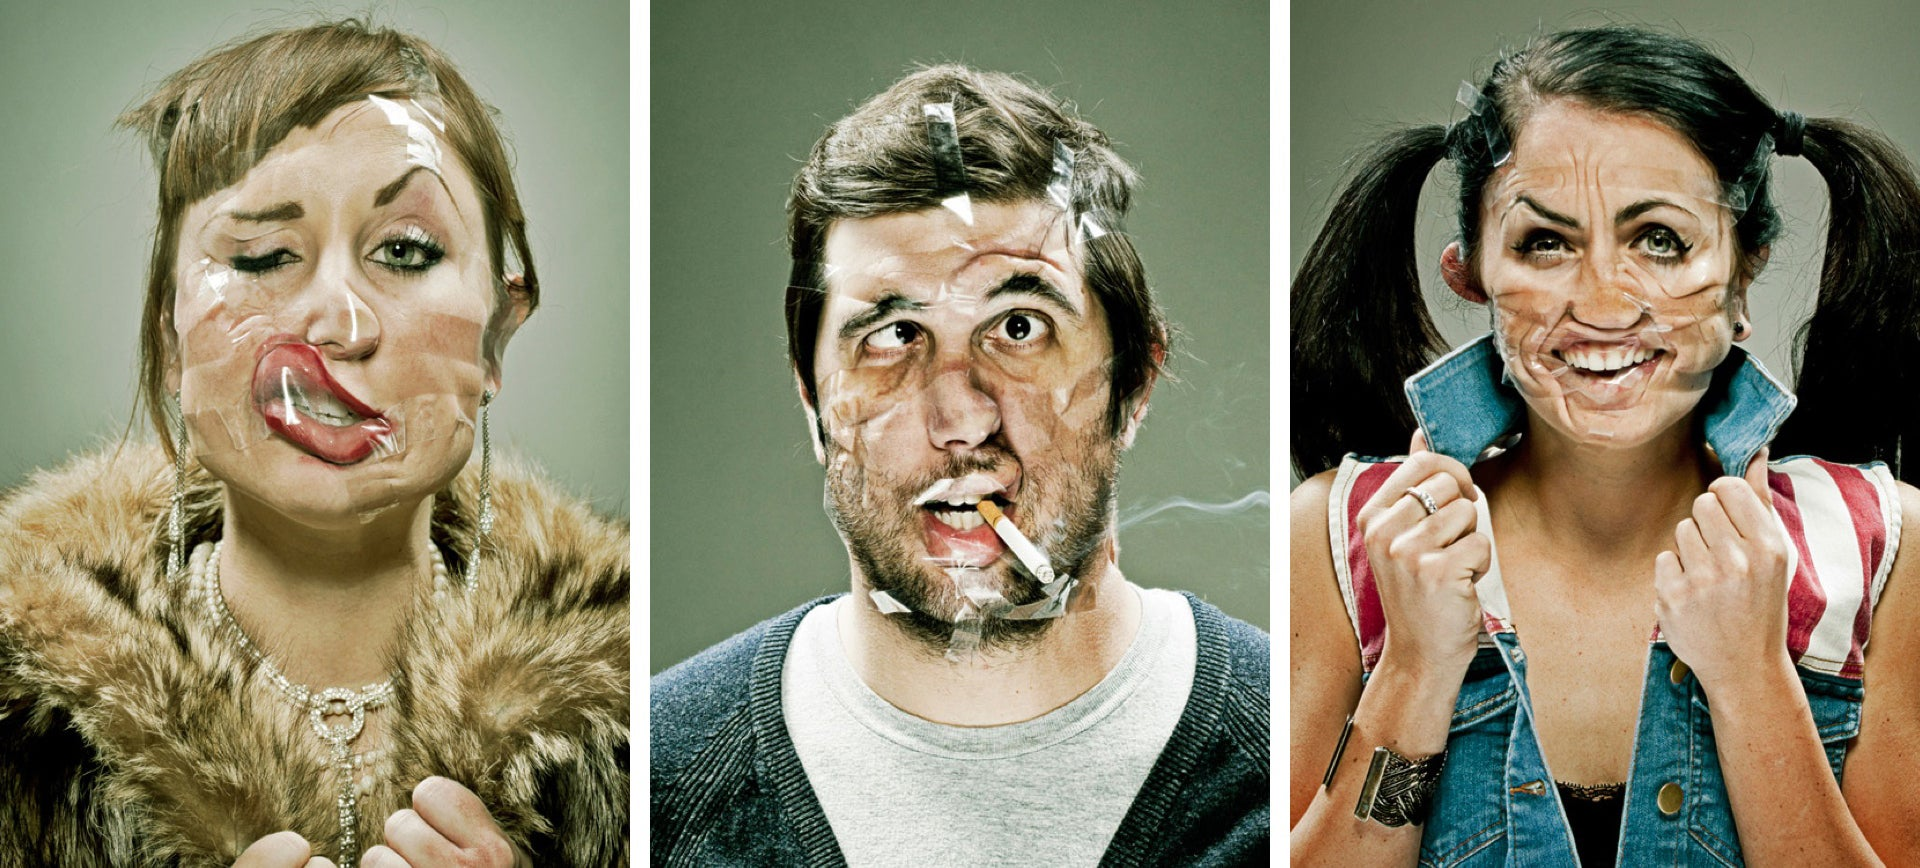 Portraits of people deformed by Scotch tape are hilariously freaky